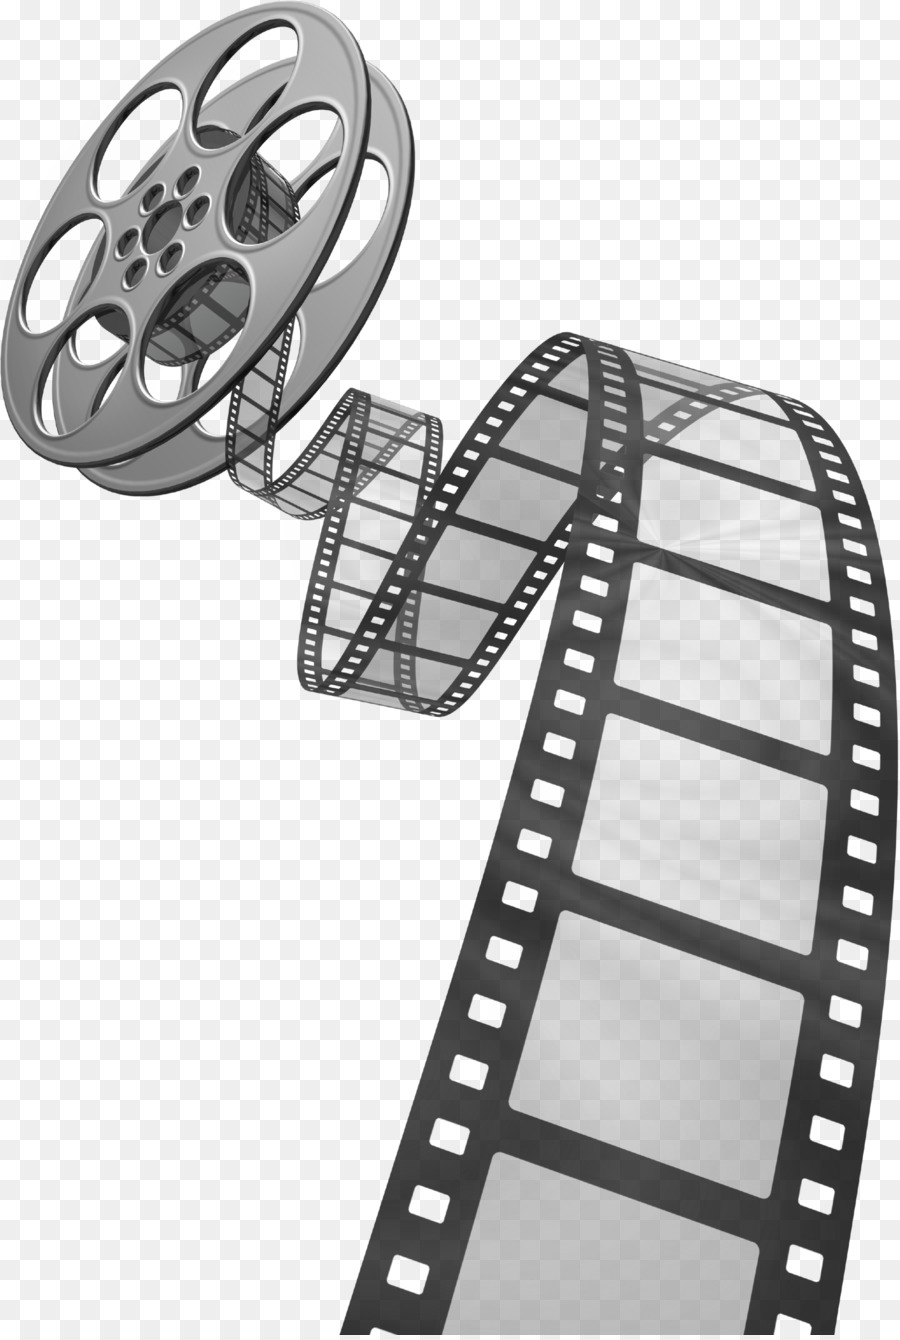 Movie Film Reel Png & Free Movie Film Reel.png Transparent.